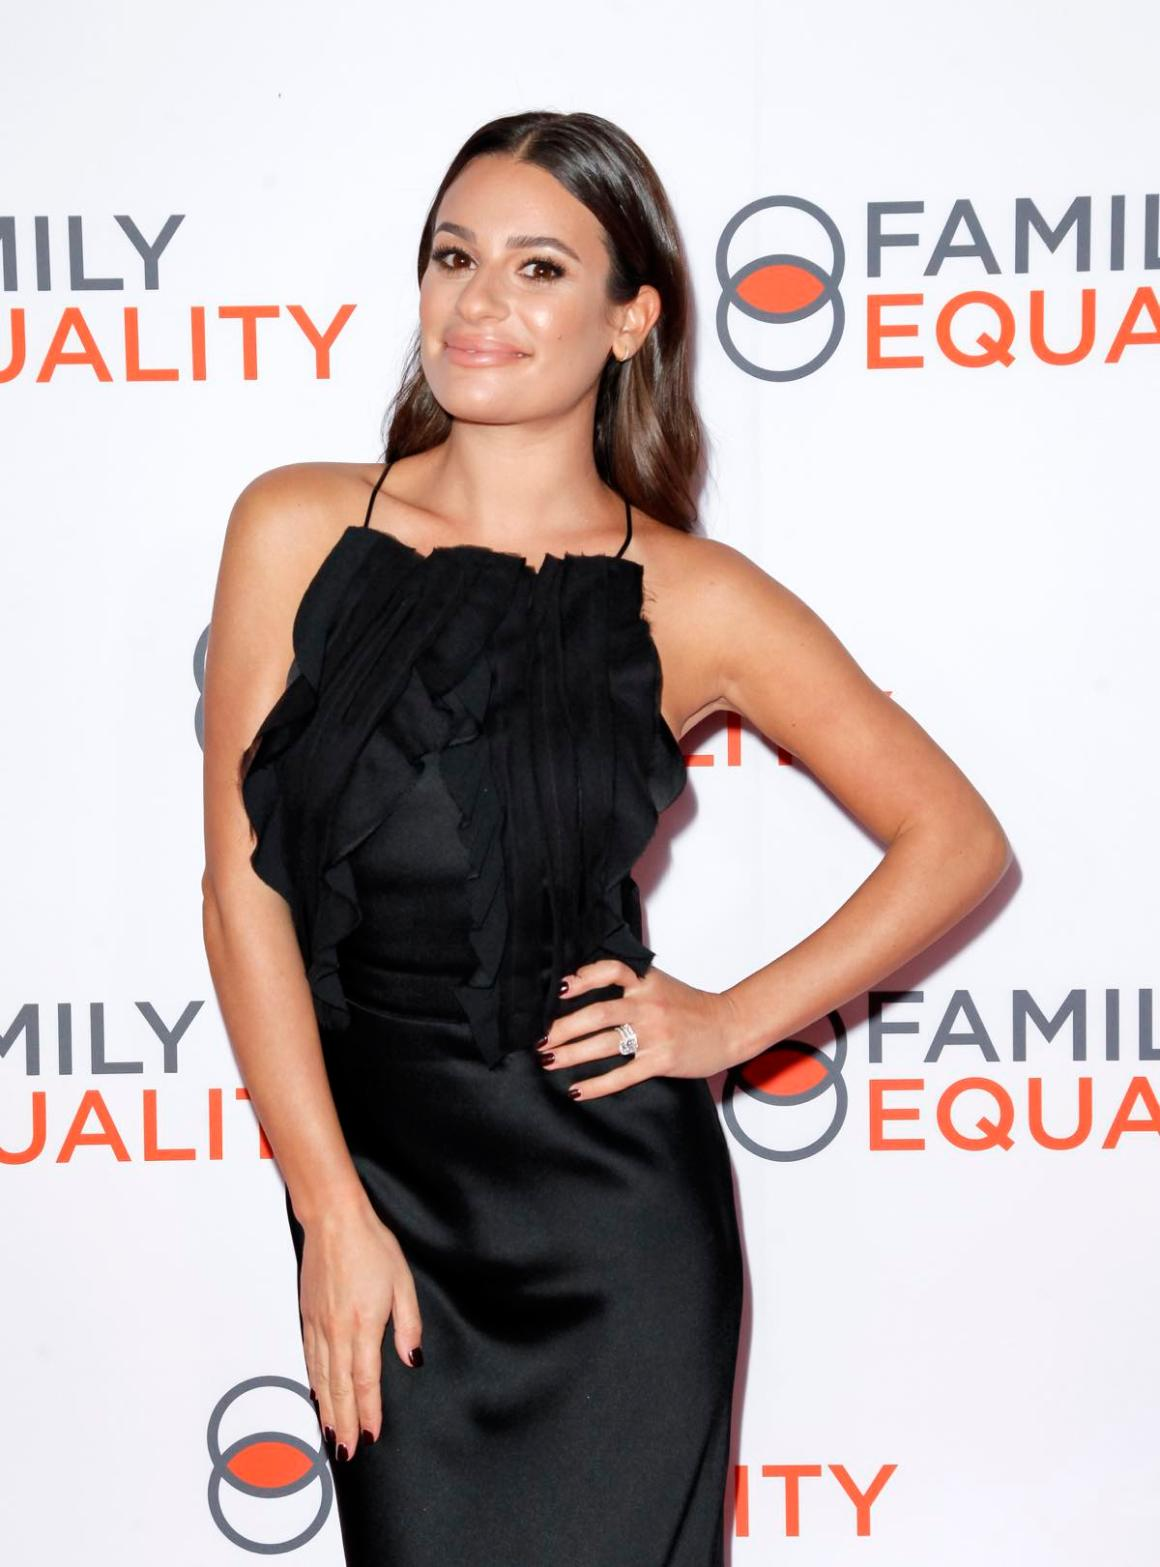 Lea Michele Family Equality Los Angeles Impact Awards 2019